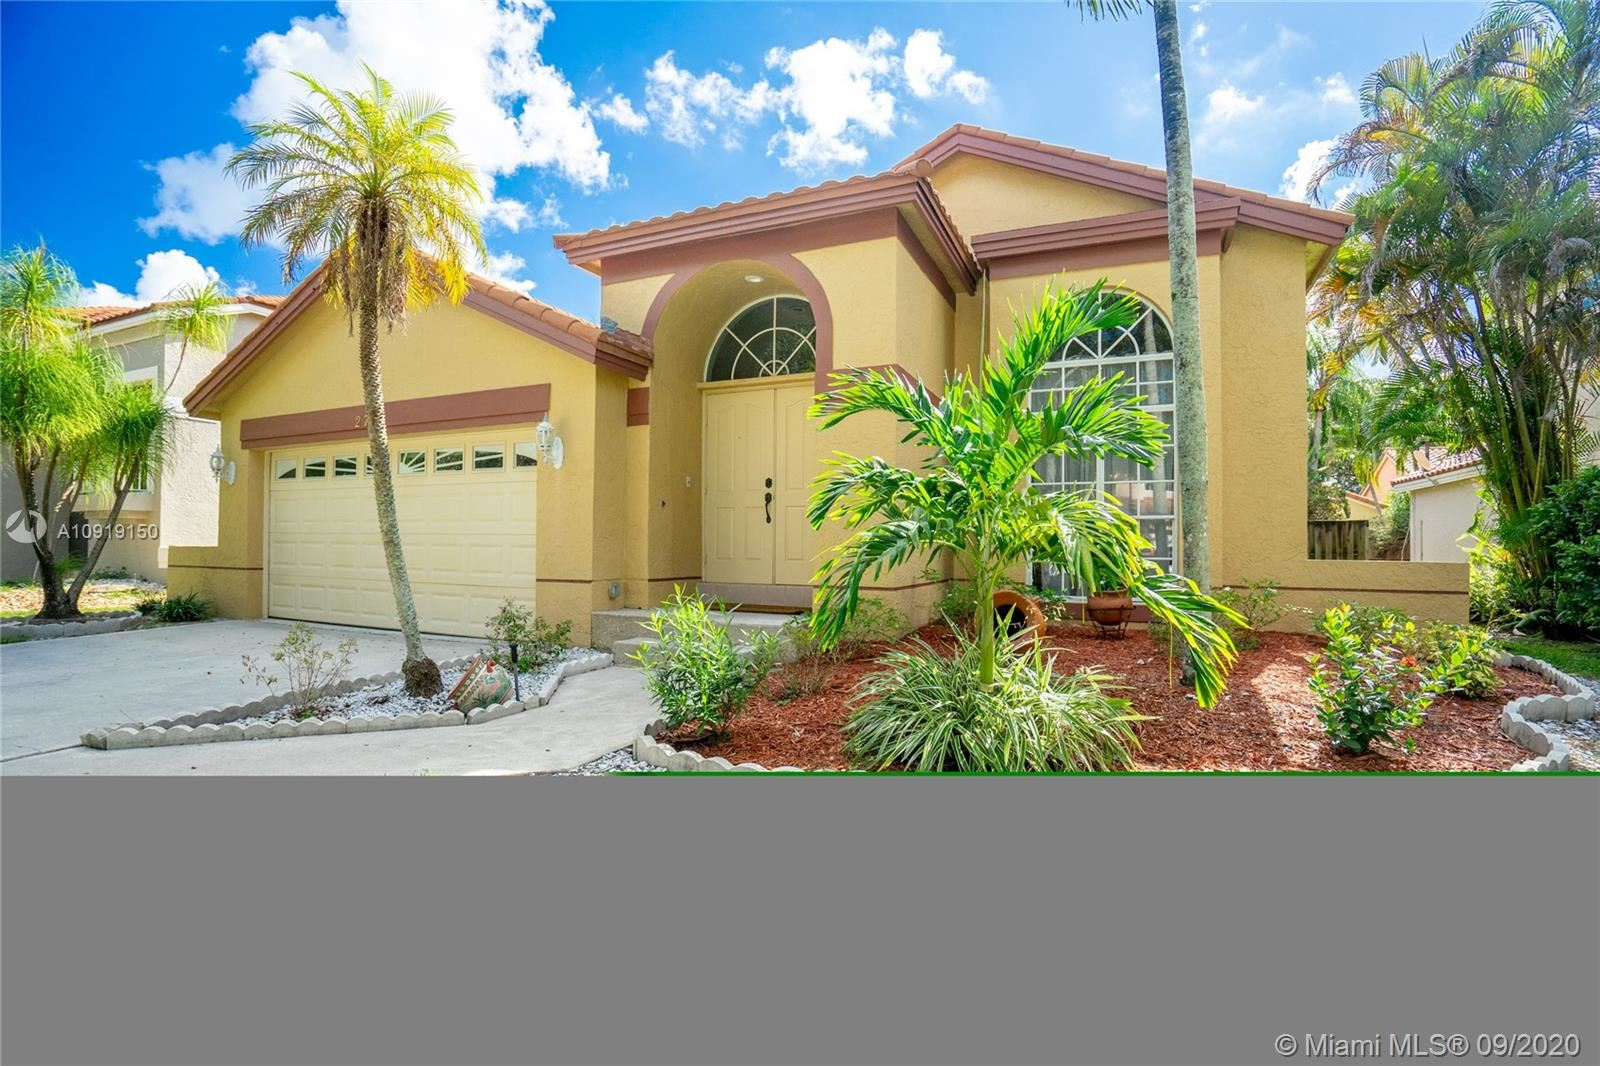 2741 Montevideo Ave, Cooper City, FL 33026 - #: A10919150